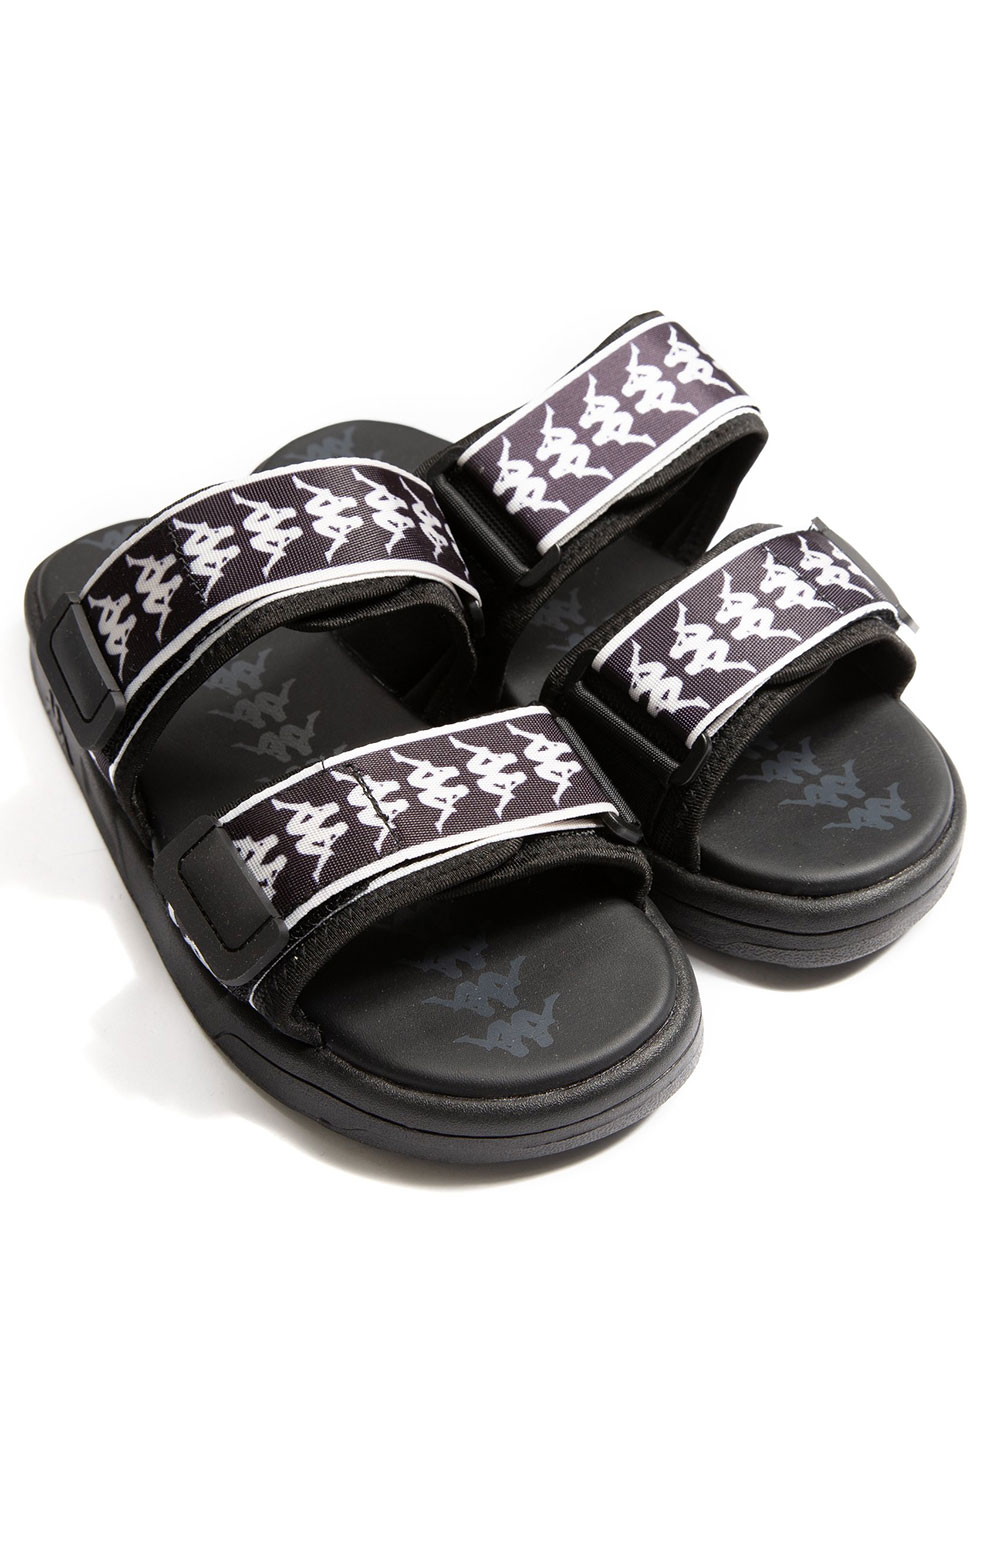 222 Banda Aster 1 Slides - Black/White